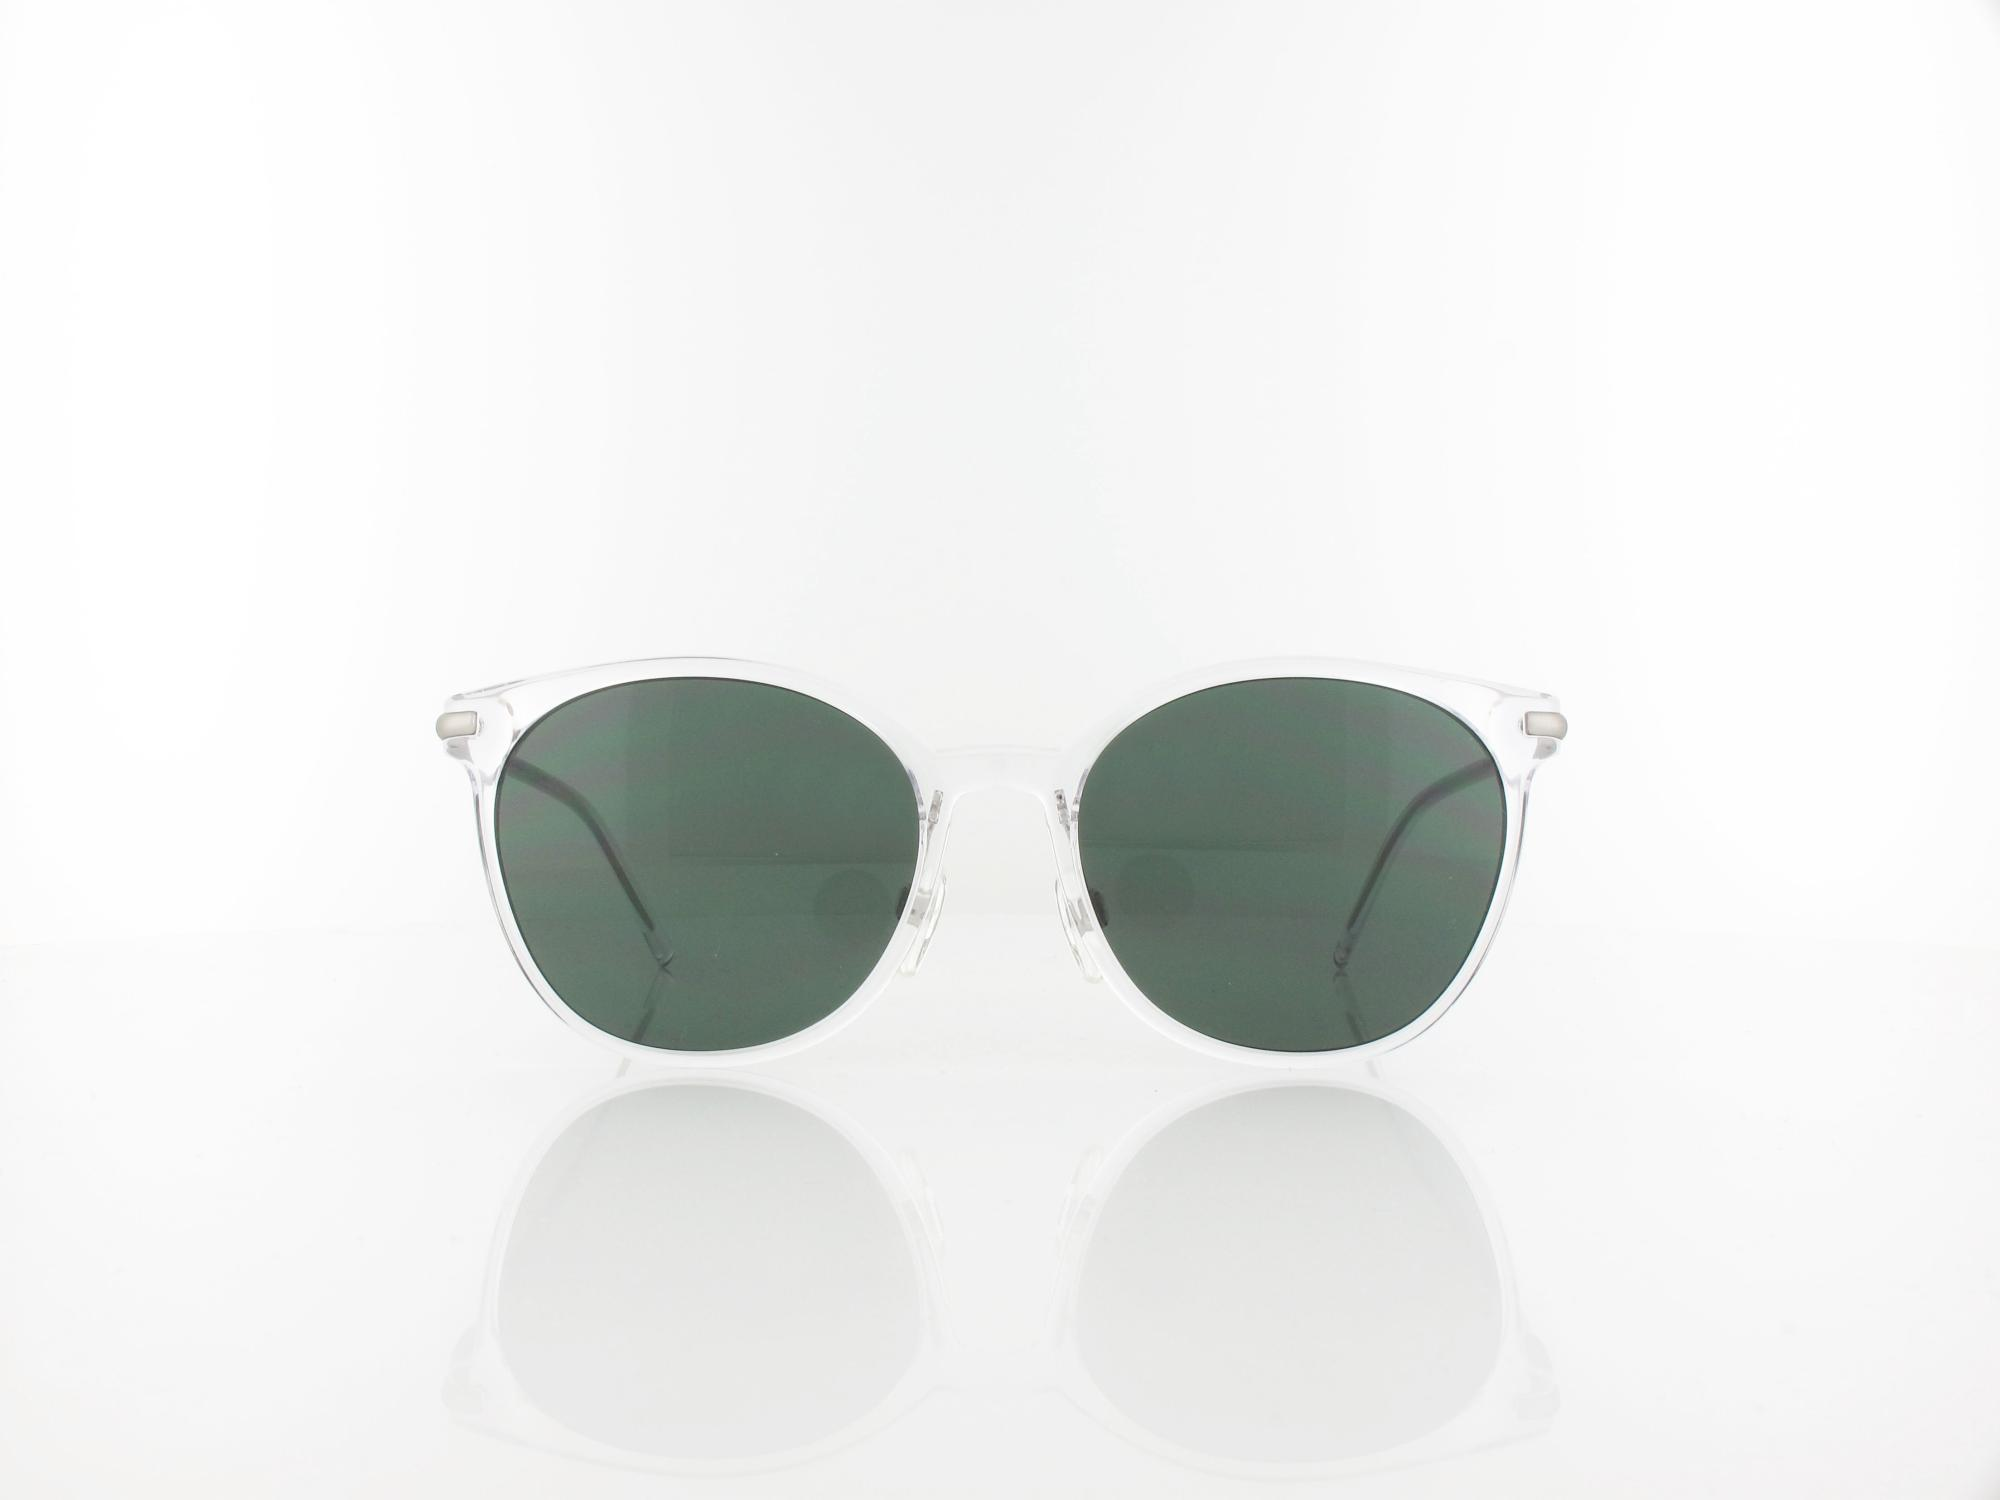 Tommy Hilfiger | TH 1399/S CRA 85 53 | crystal / green